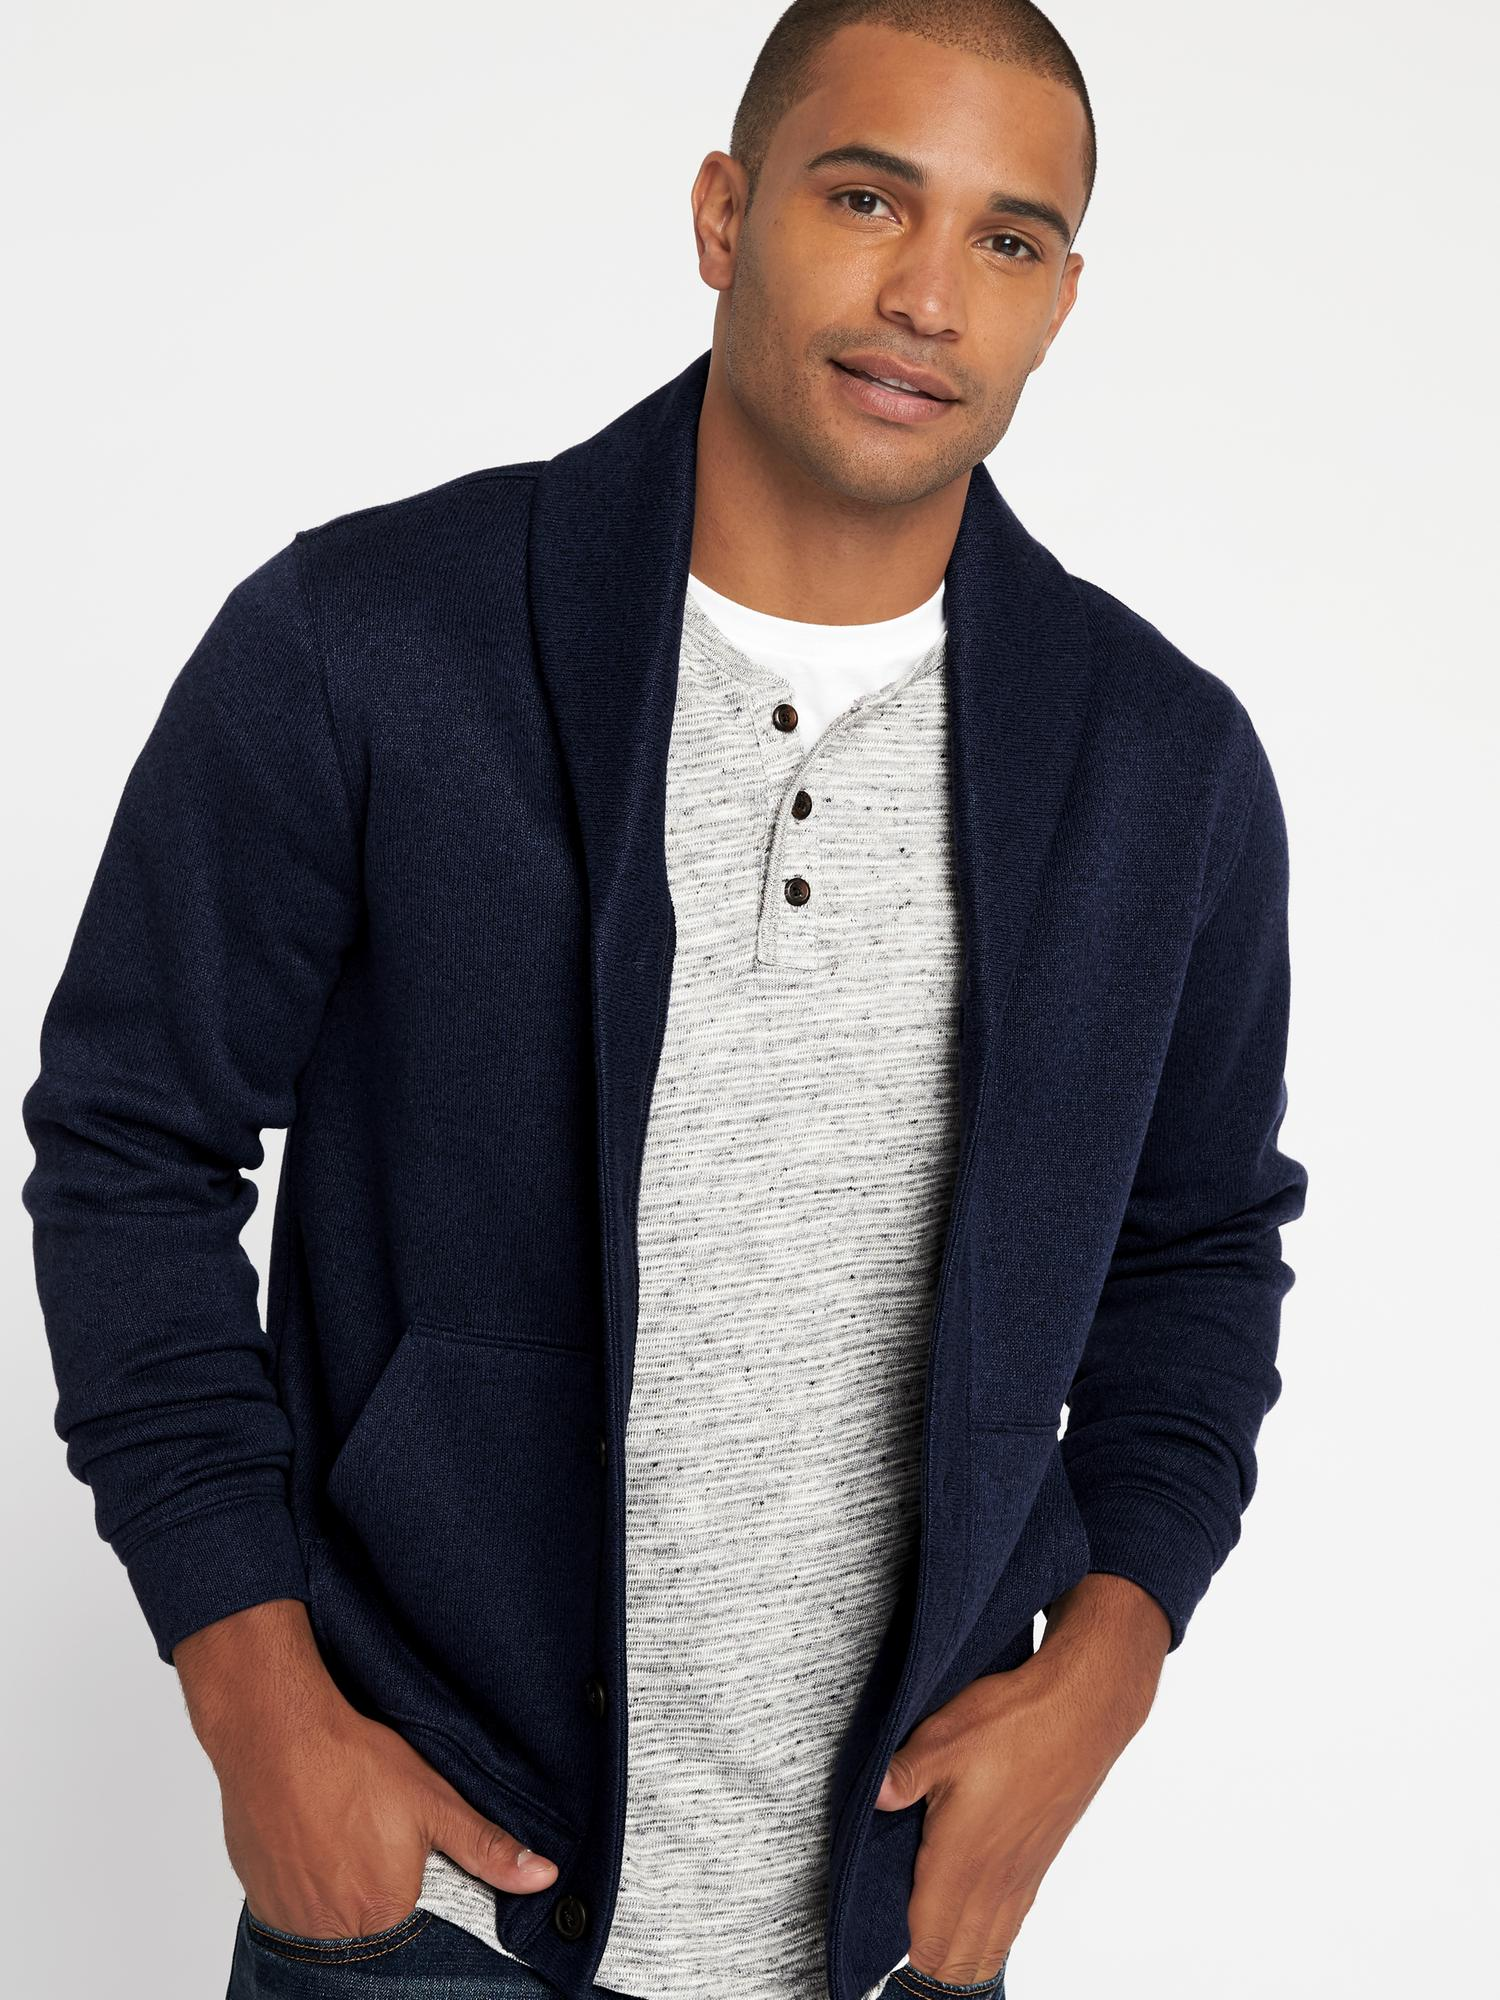 Shawl-Collar Sweater-Knit Fleece Cardigan for Men | Old Navy